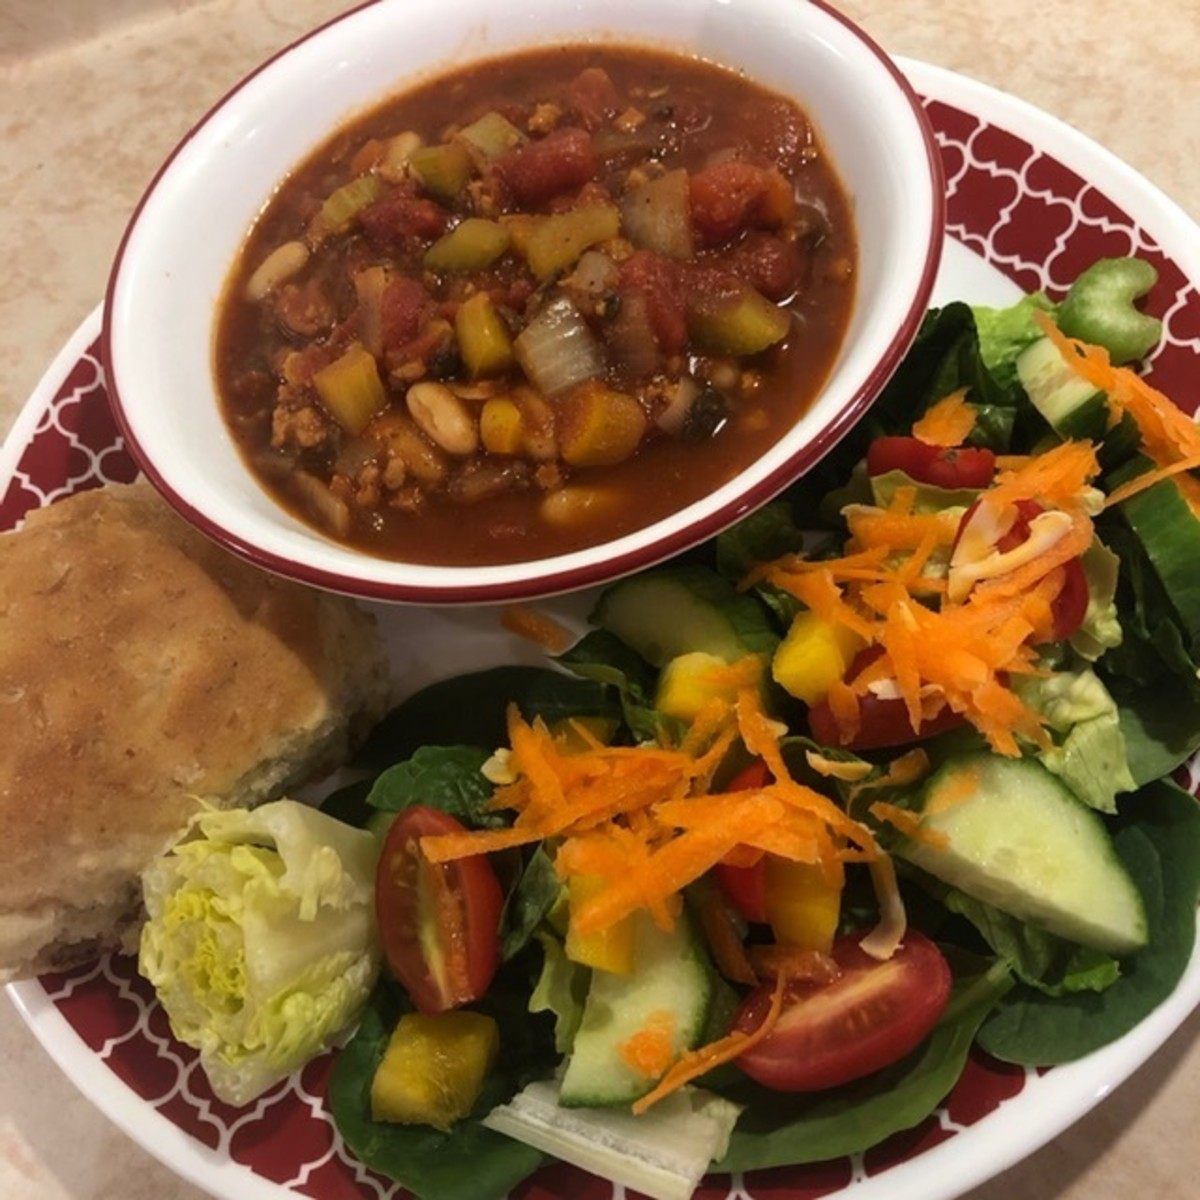 Vegan chili served with salad and homemade bread rolls